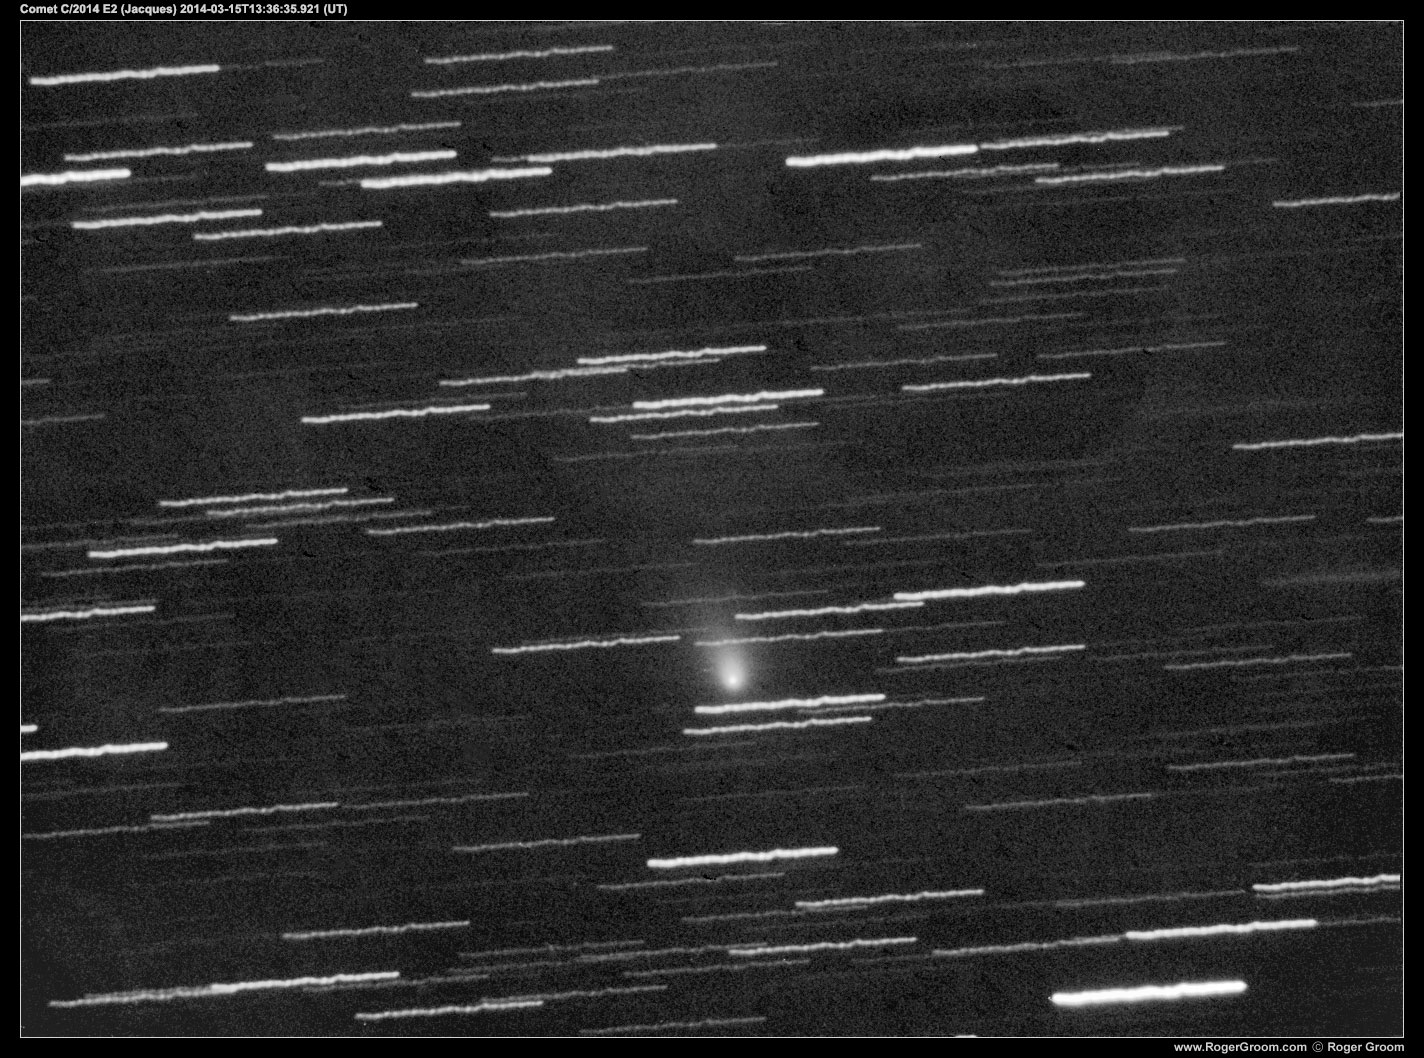 Comet C/2014 E2 (Jacques) 10x300s exposures. Average. Heavy processing to reduce the effects of a nearby almost full moon.